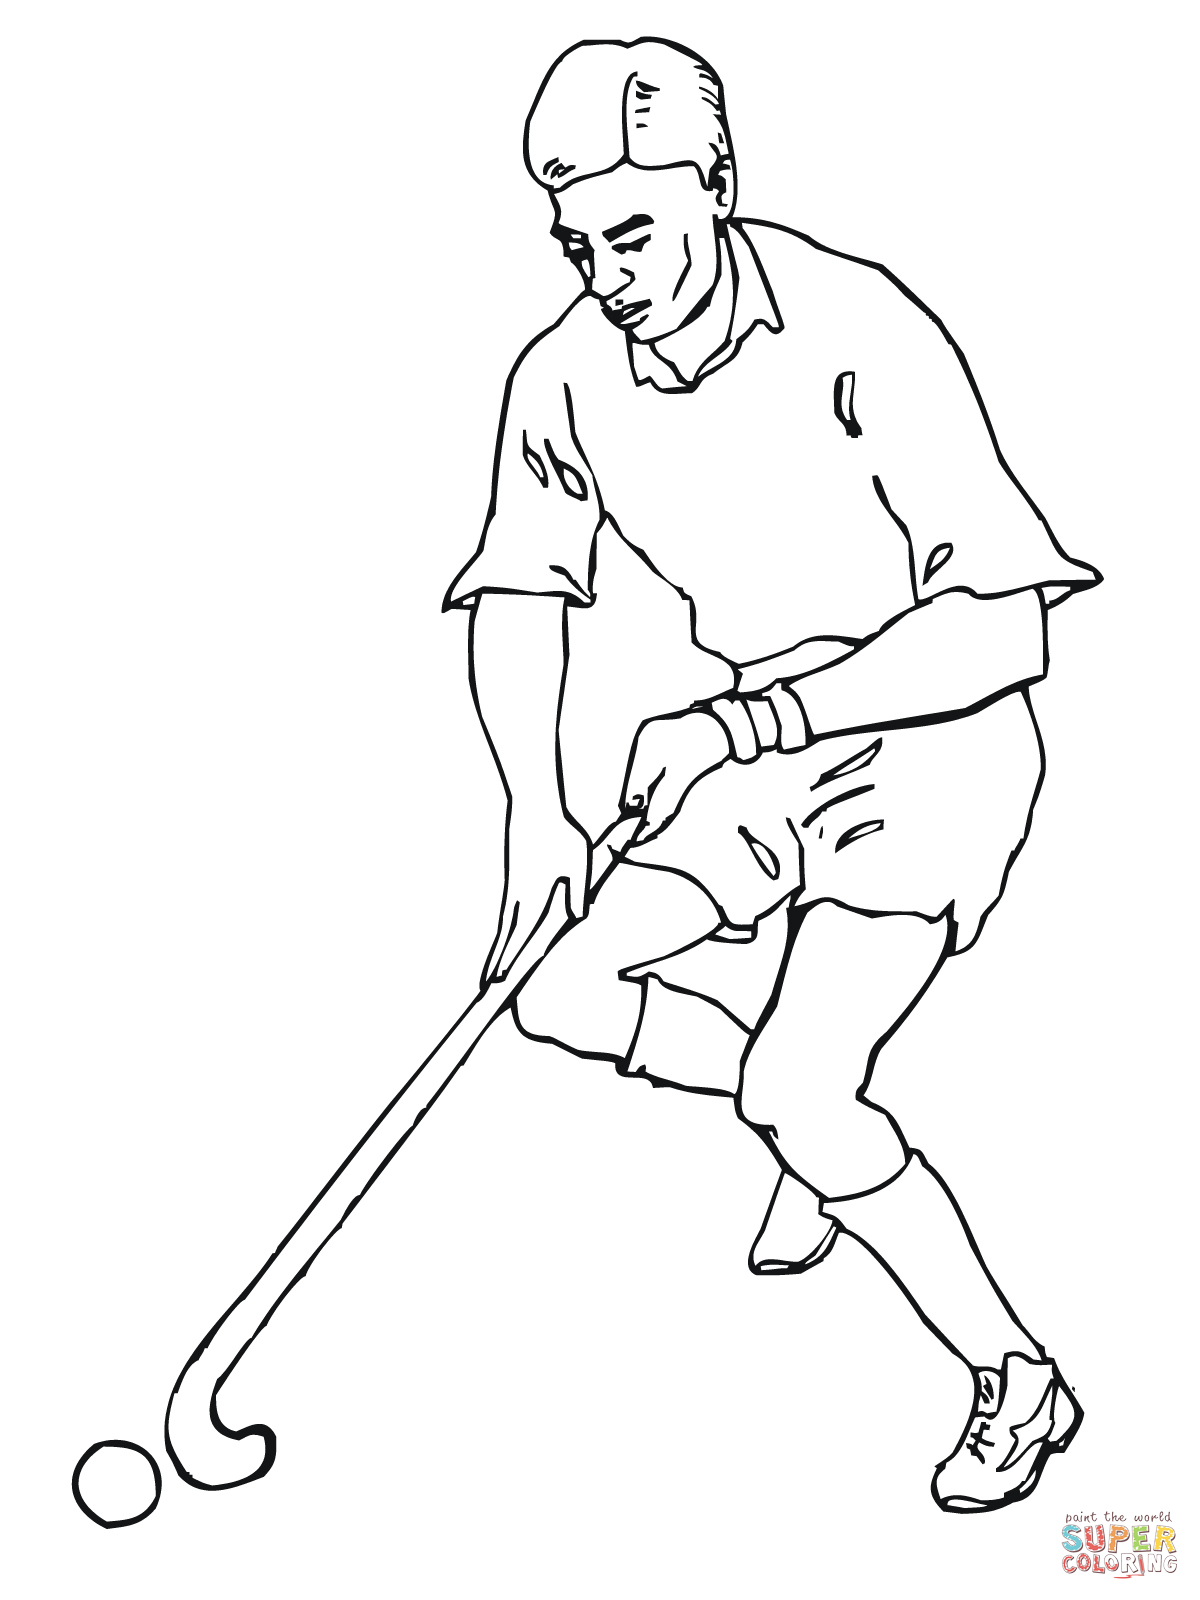 15 Kids Coloring Pages Field Hockey